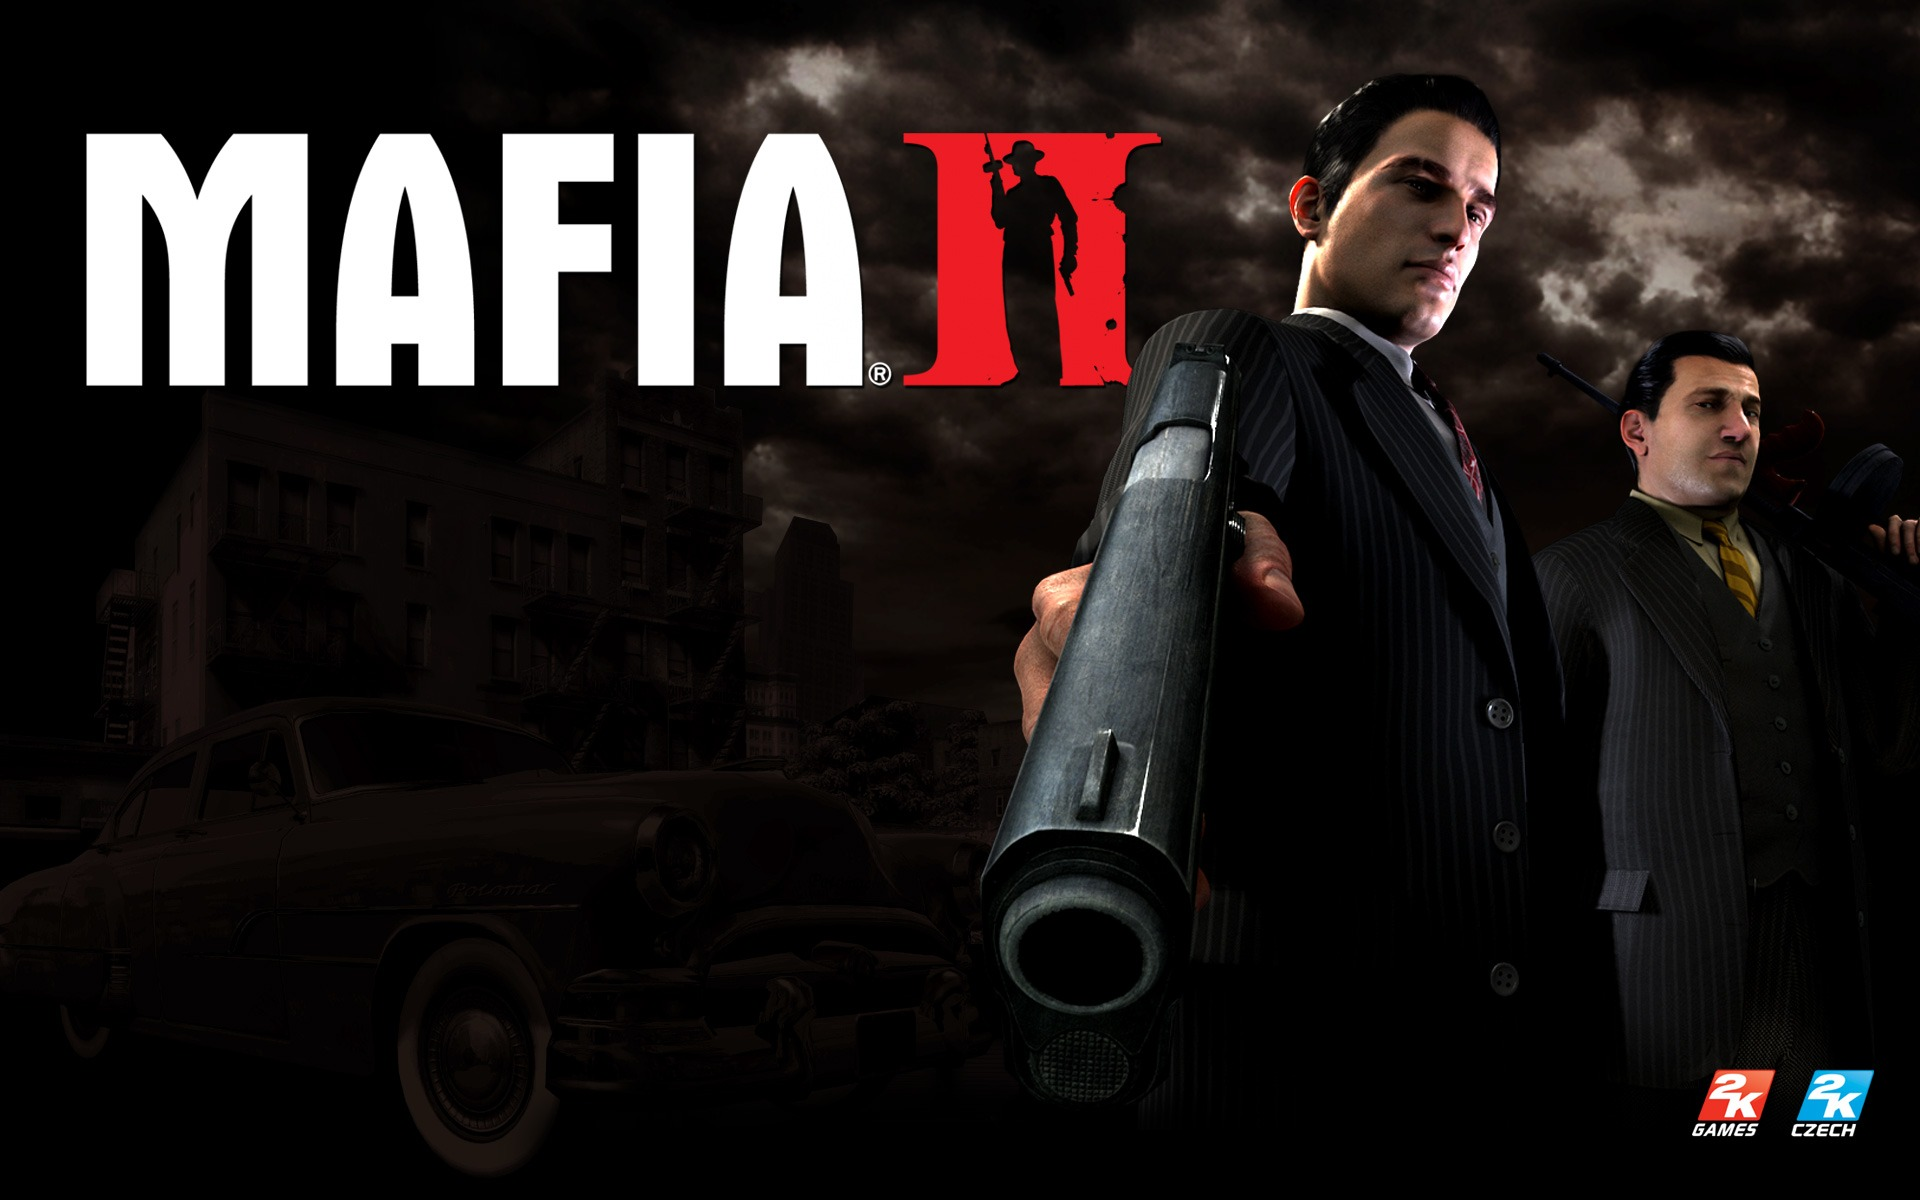 Gangsters wallpaper wallpapers for free download about 3004 mafia 2 gangsters wallpaper mafia 2 games voltagebd Choice Image